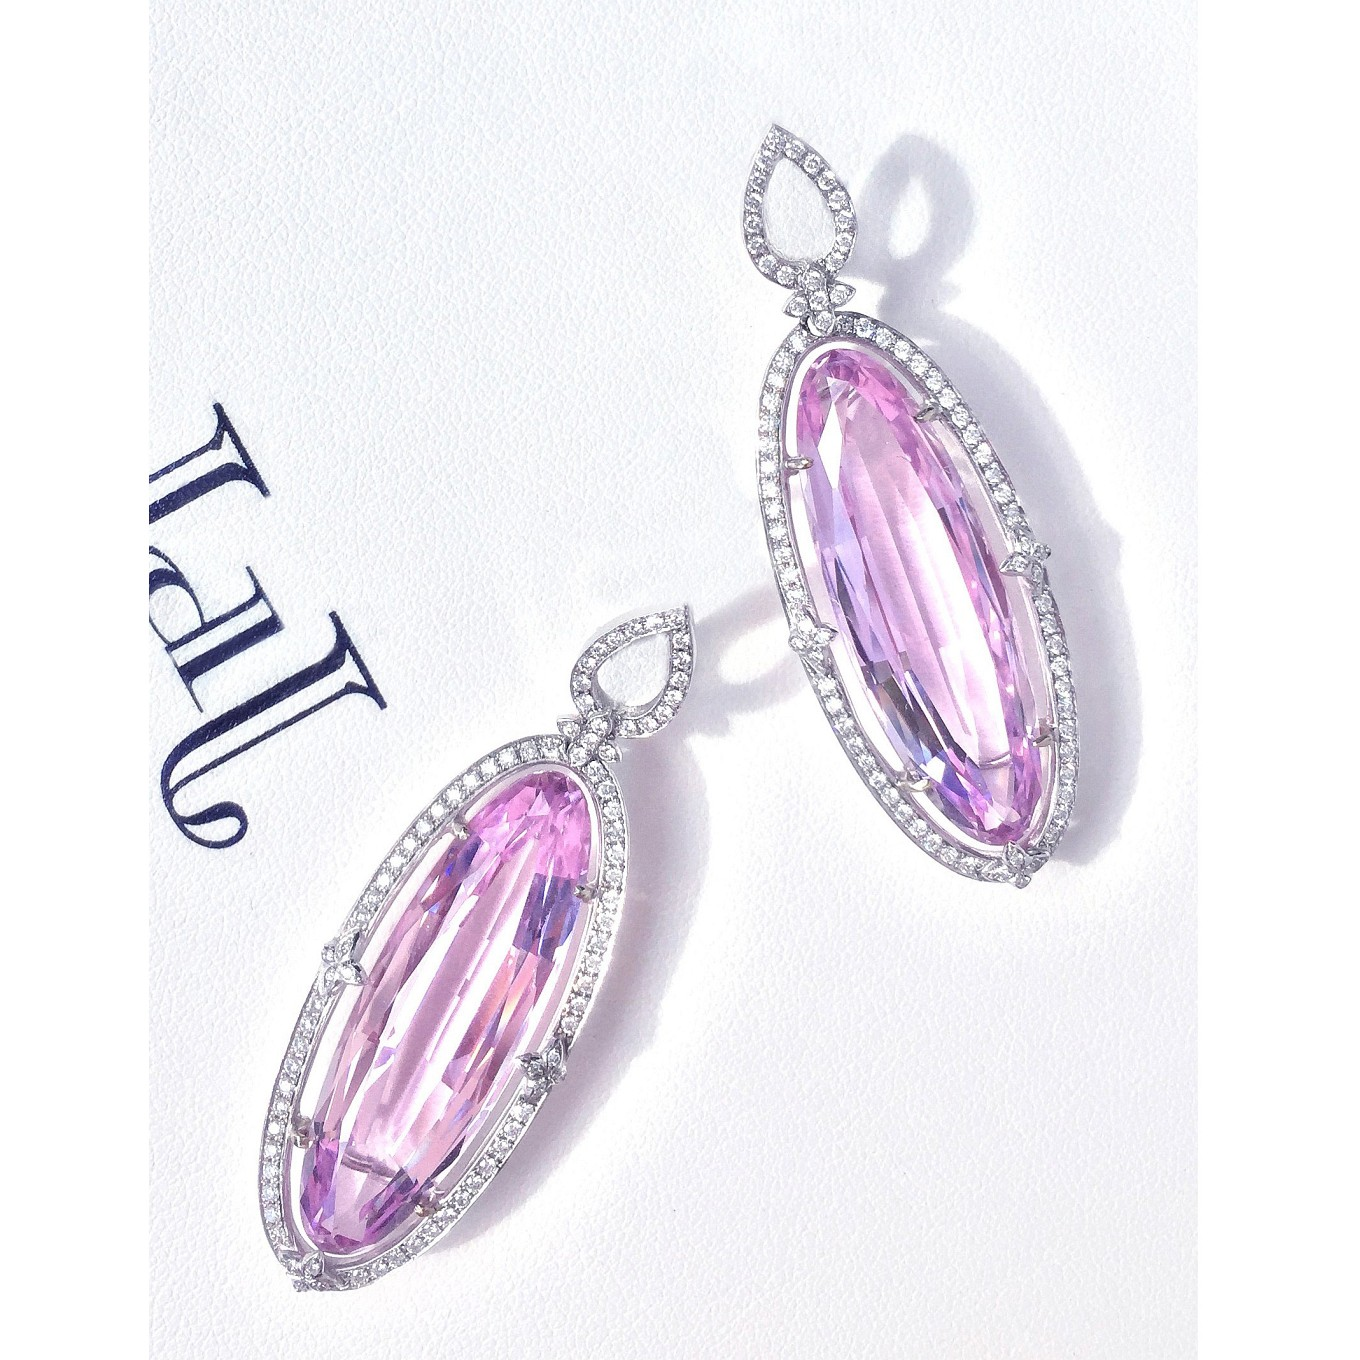 bella' earrings. kunzite & diamonds